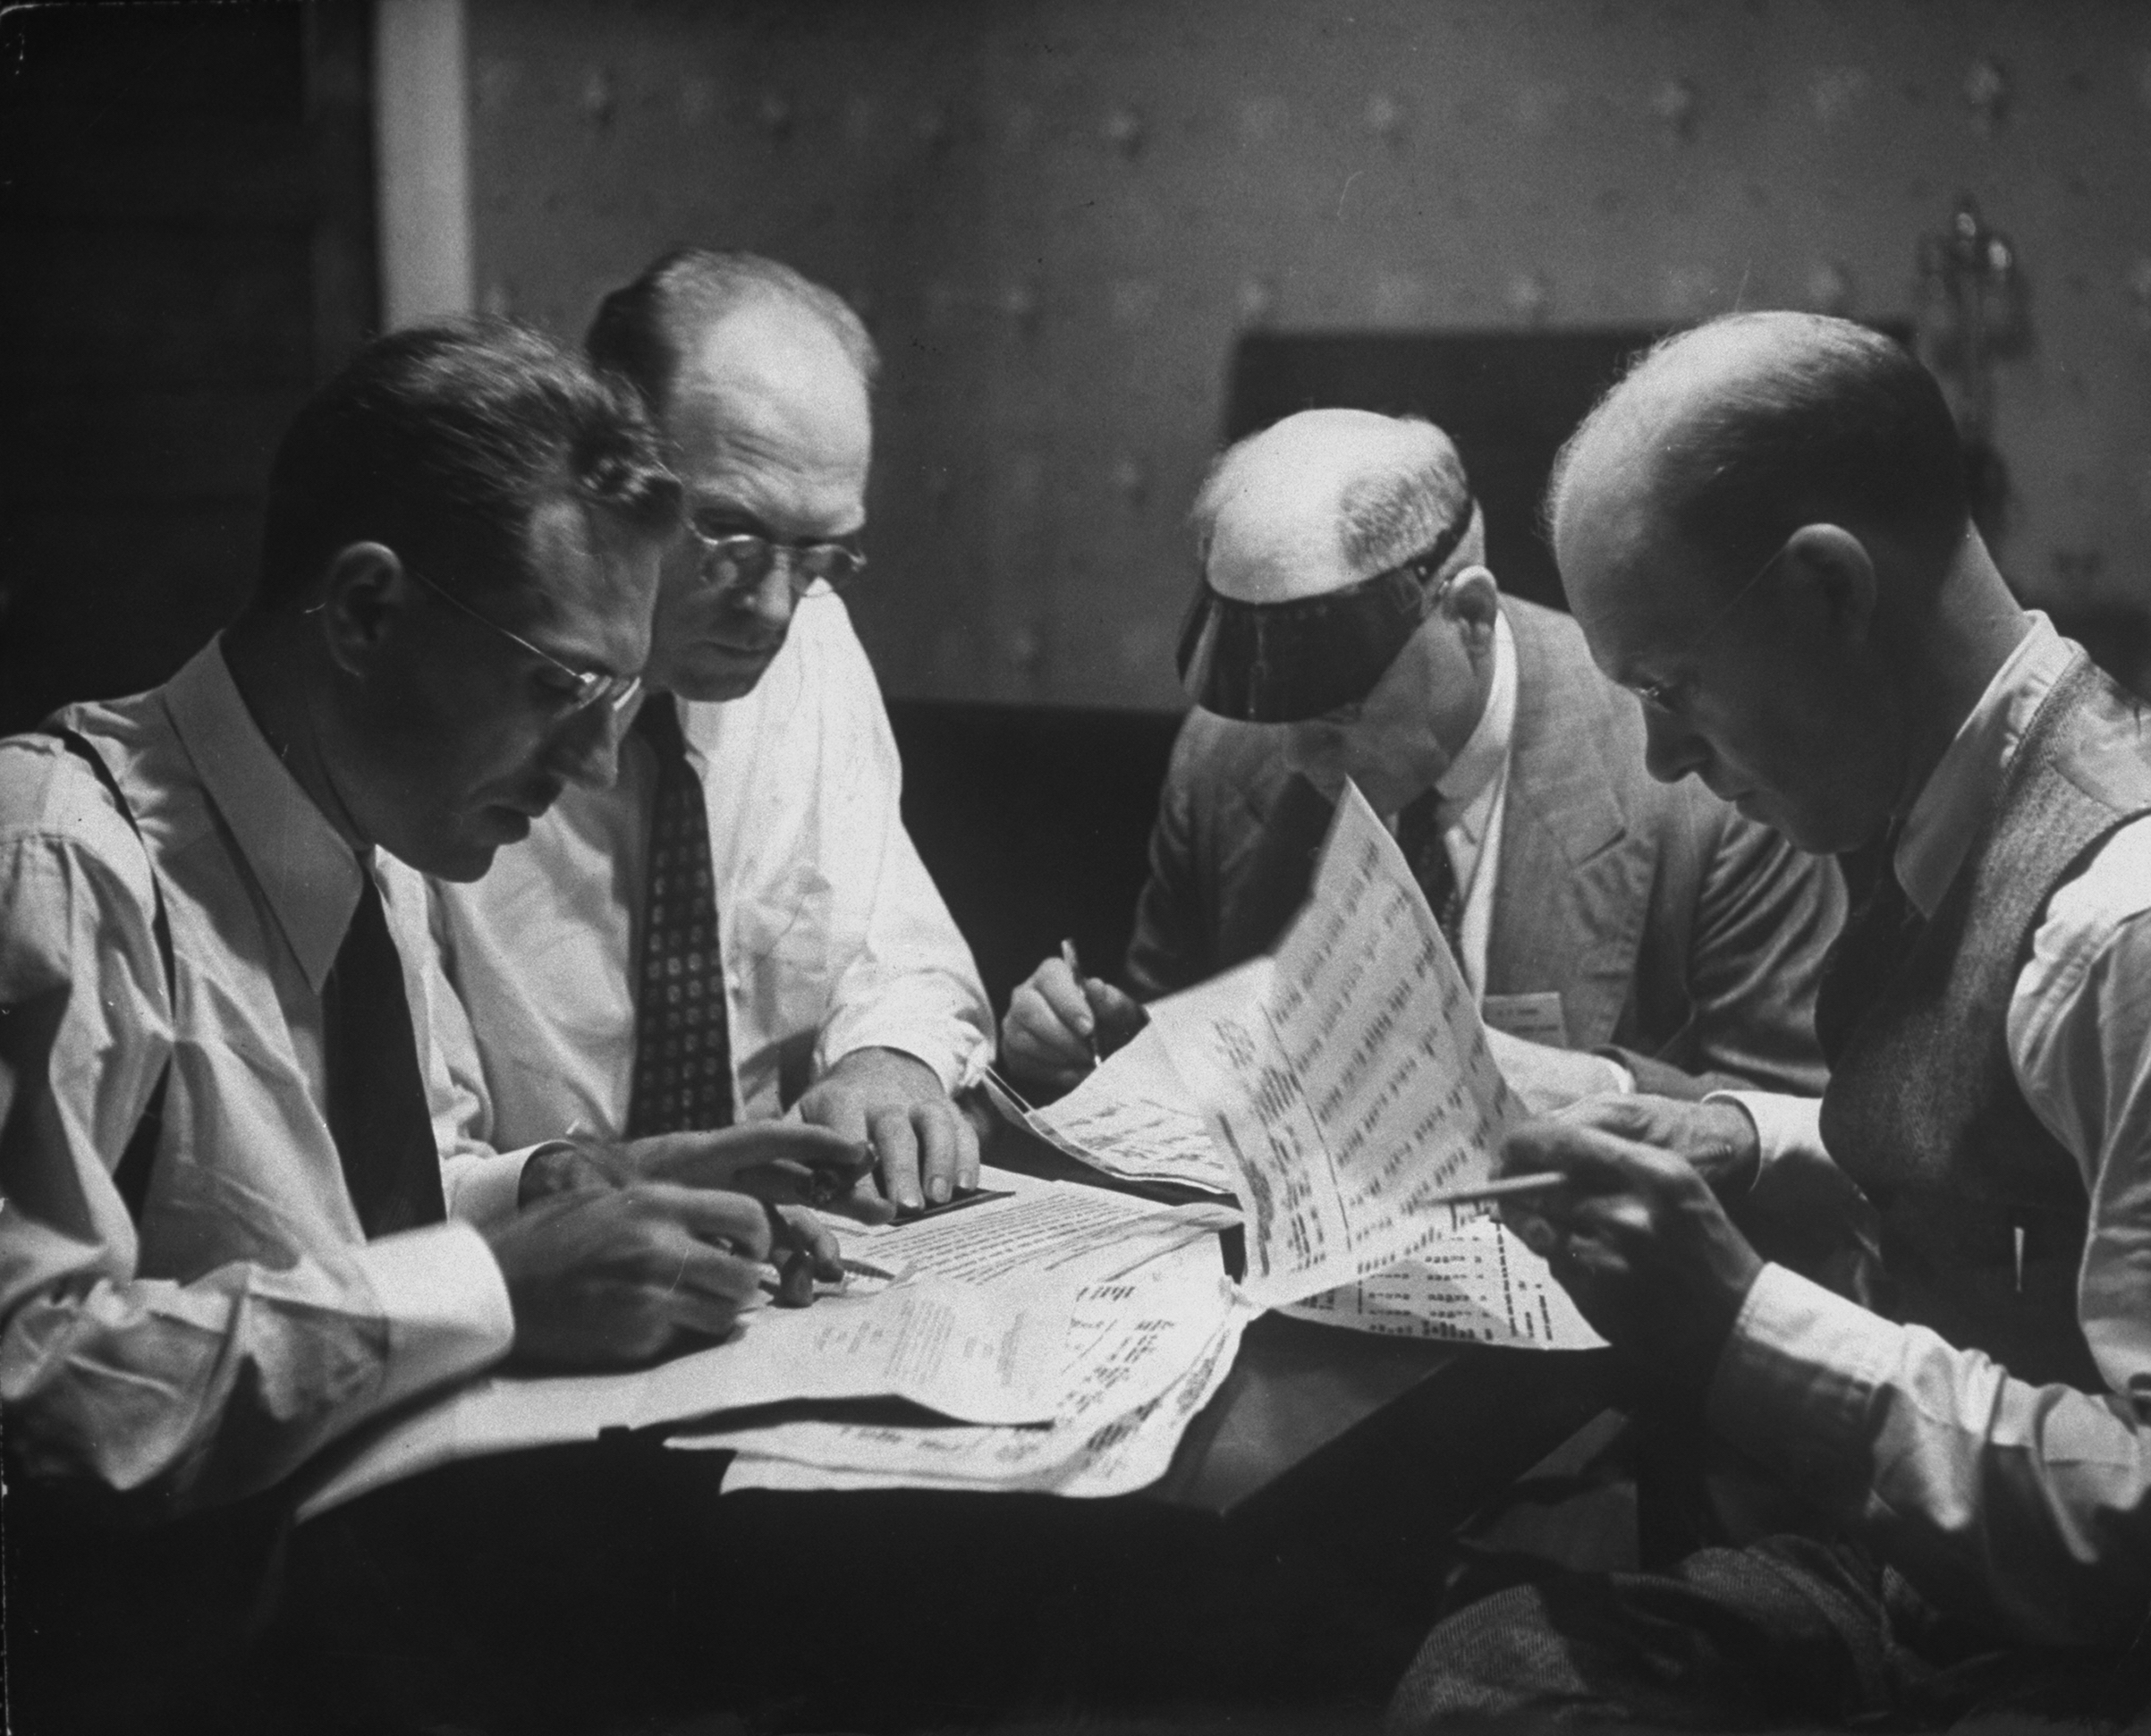 American delegation subcommittee working at night on statistical report during the international monetary conference to plan for postwar reconstruction; July 1, 1944